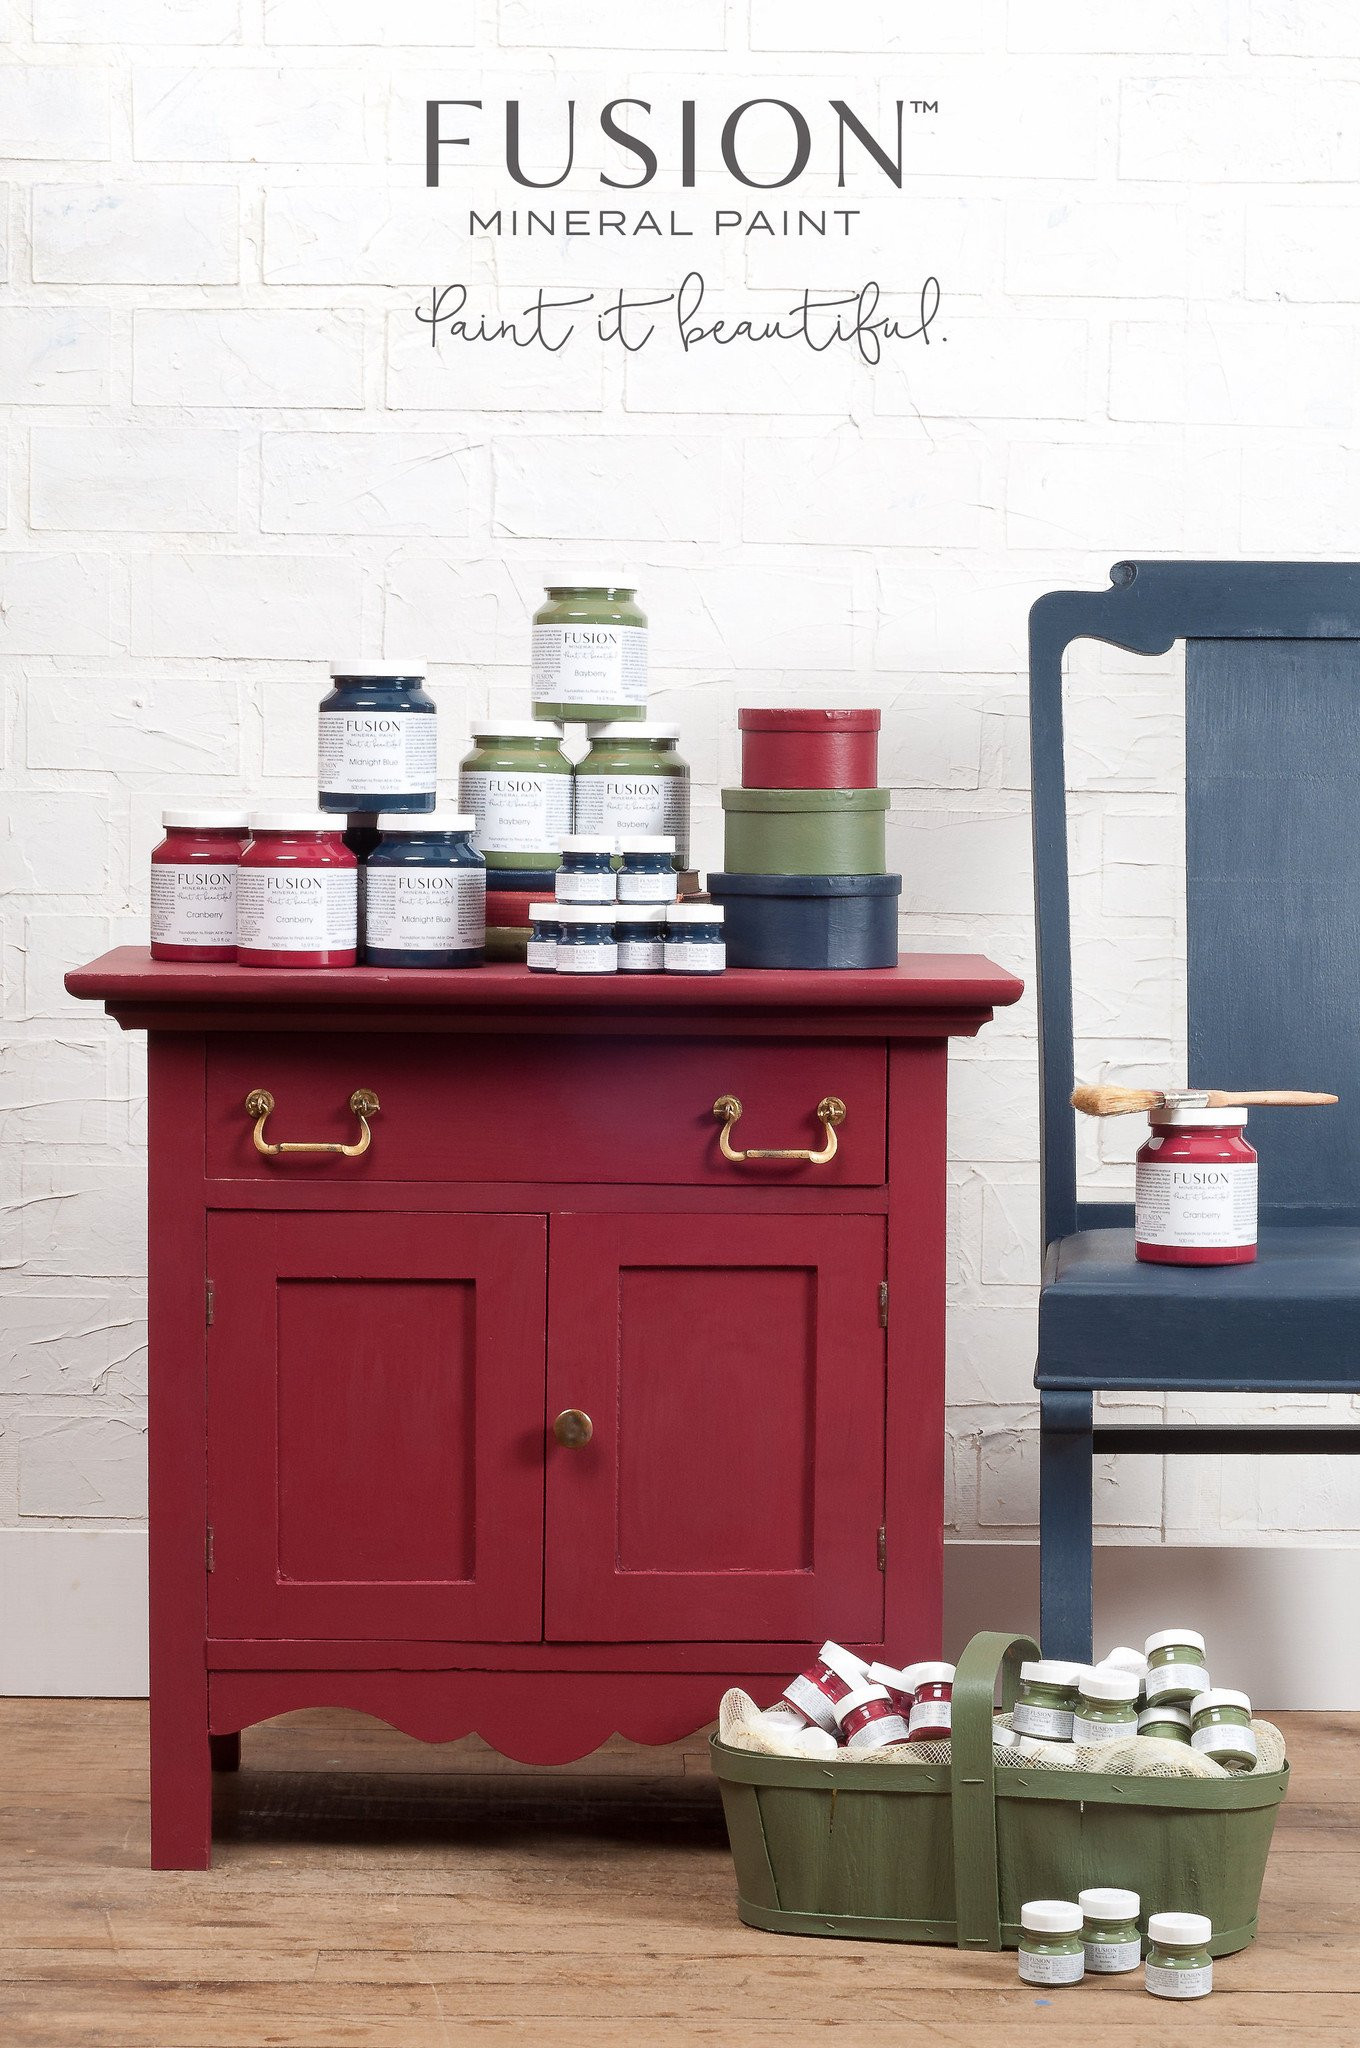 Best ideas about Fusion Mineral Paint Colors . Save or Pin Cranberry Fusion Mineral Paint Buy line Flat Rate Now.